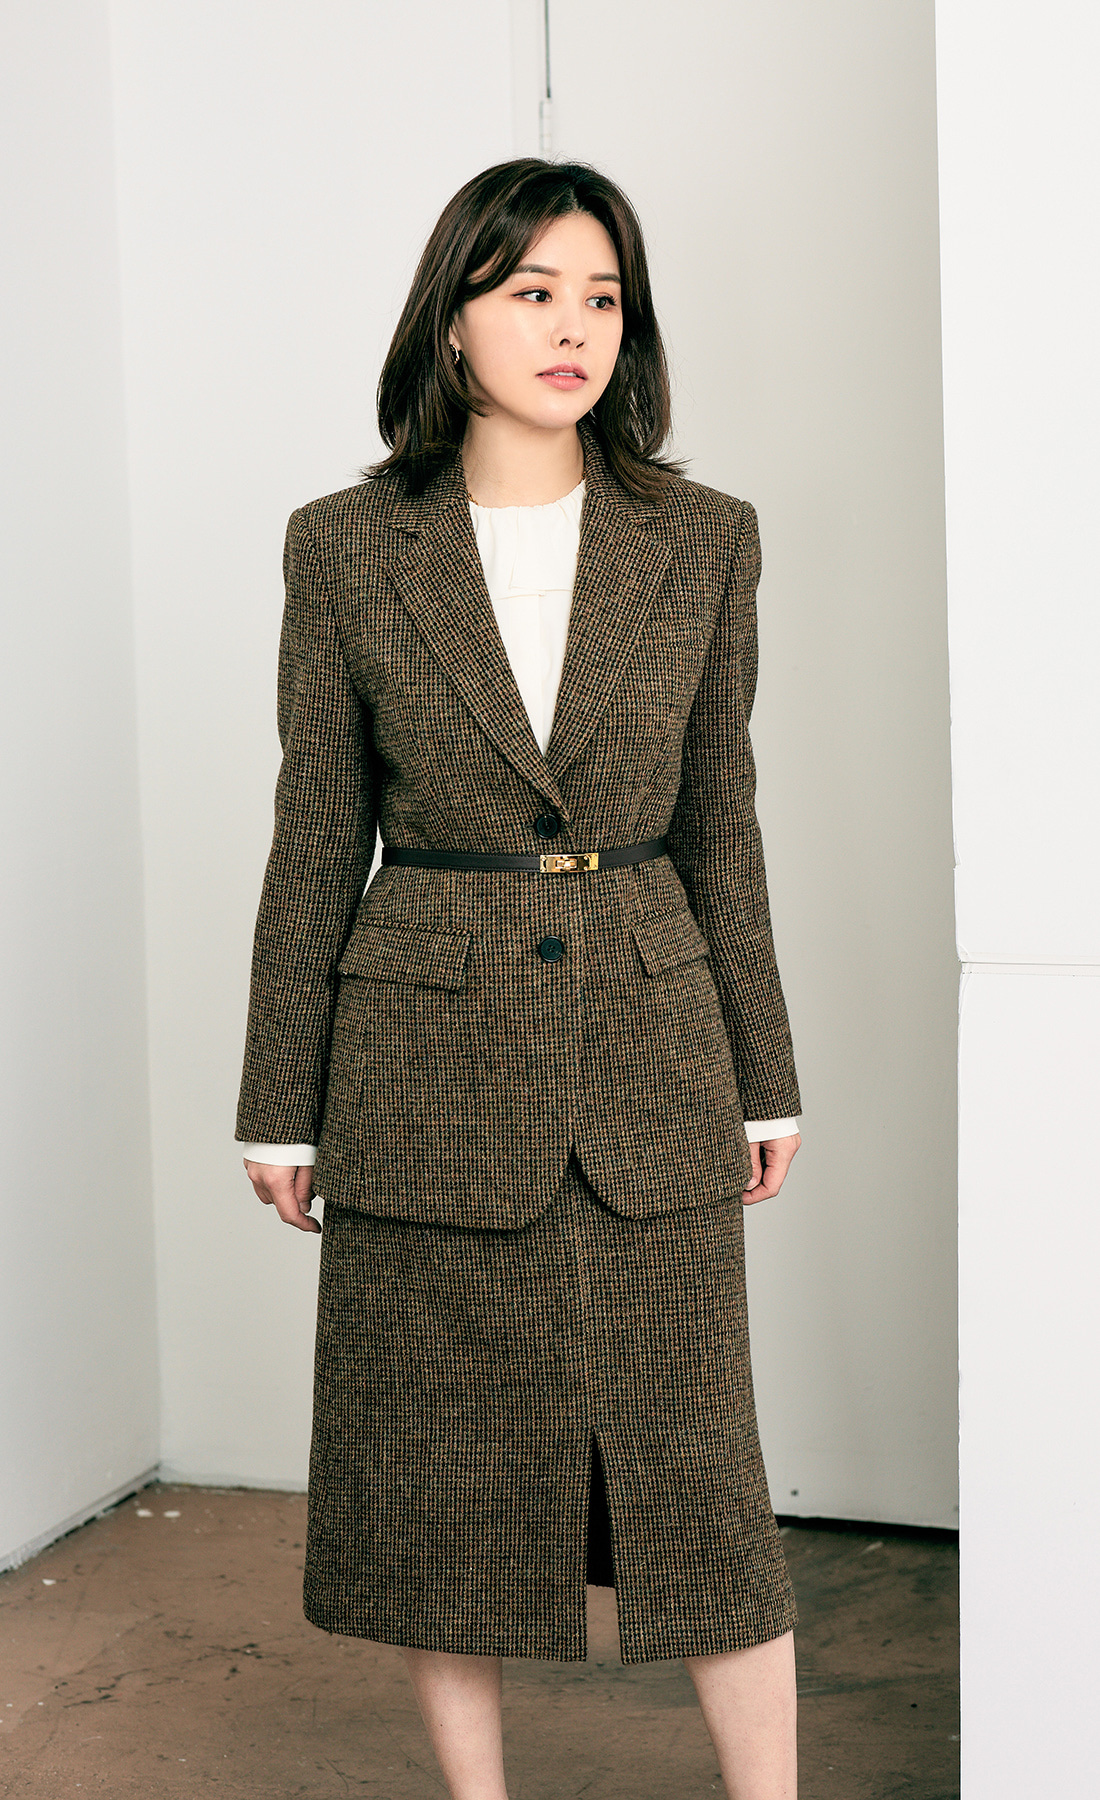 HARRIS TWEED JACKET.SKIRT